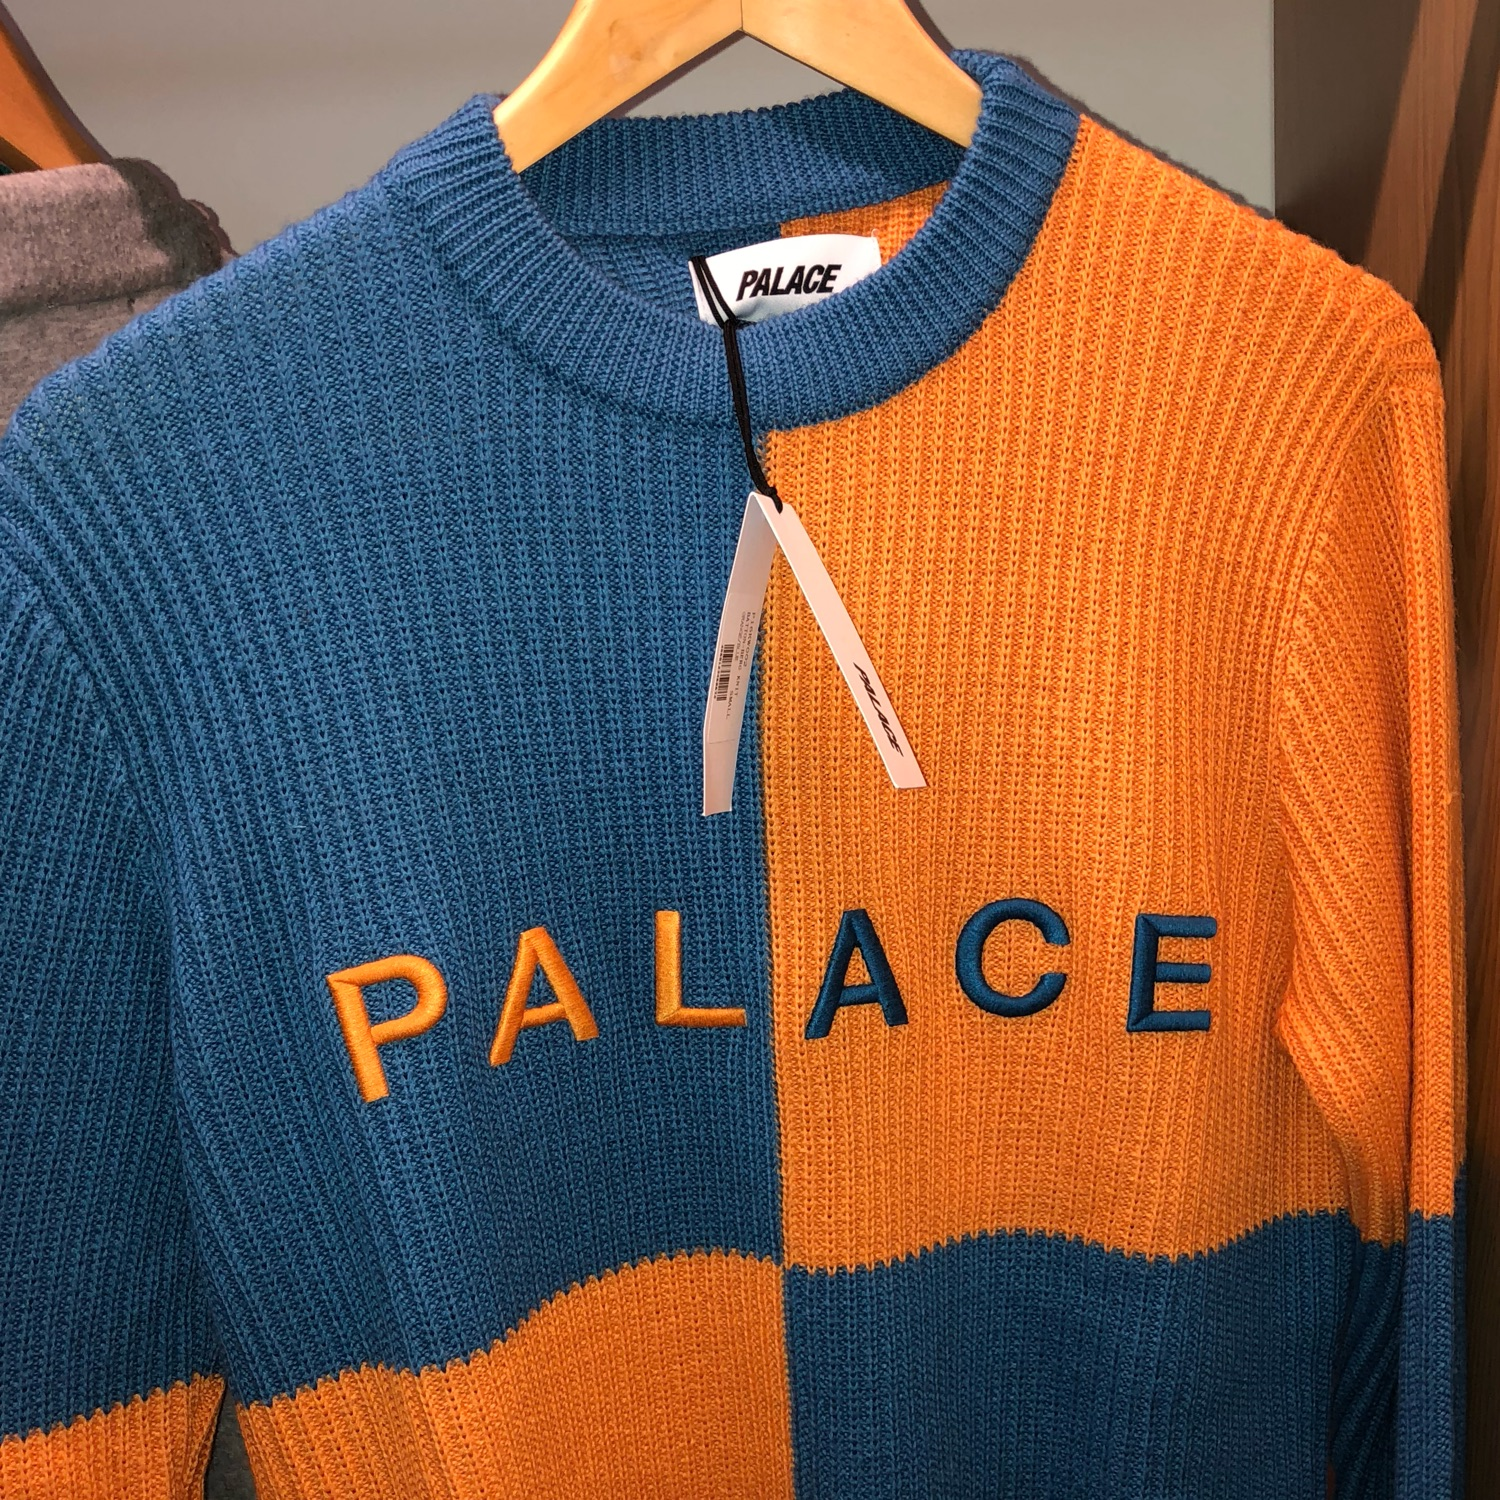 Palace Batton - Berg Knit Orange Blue Small